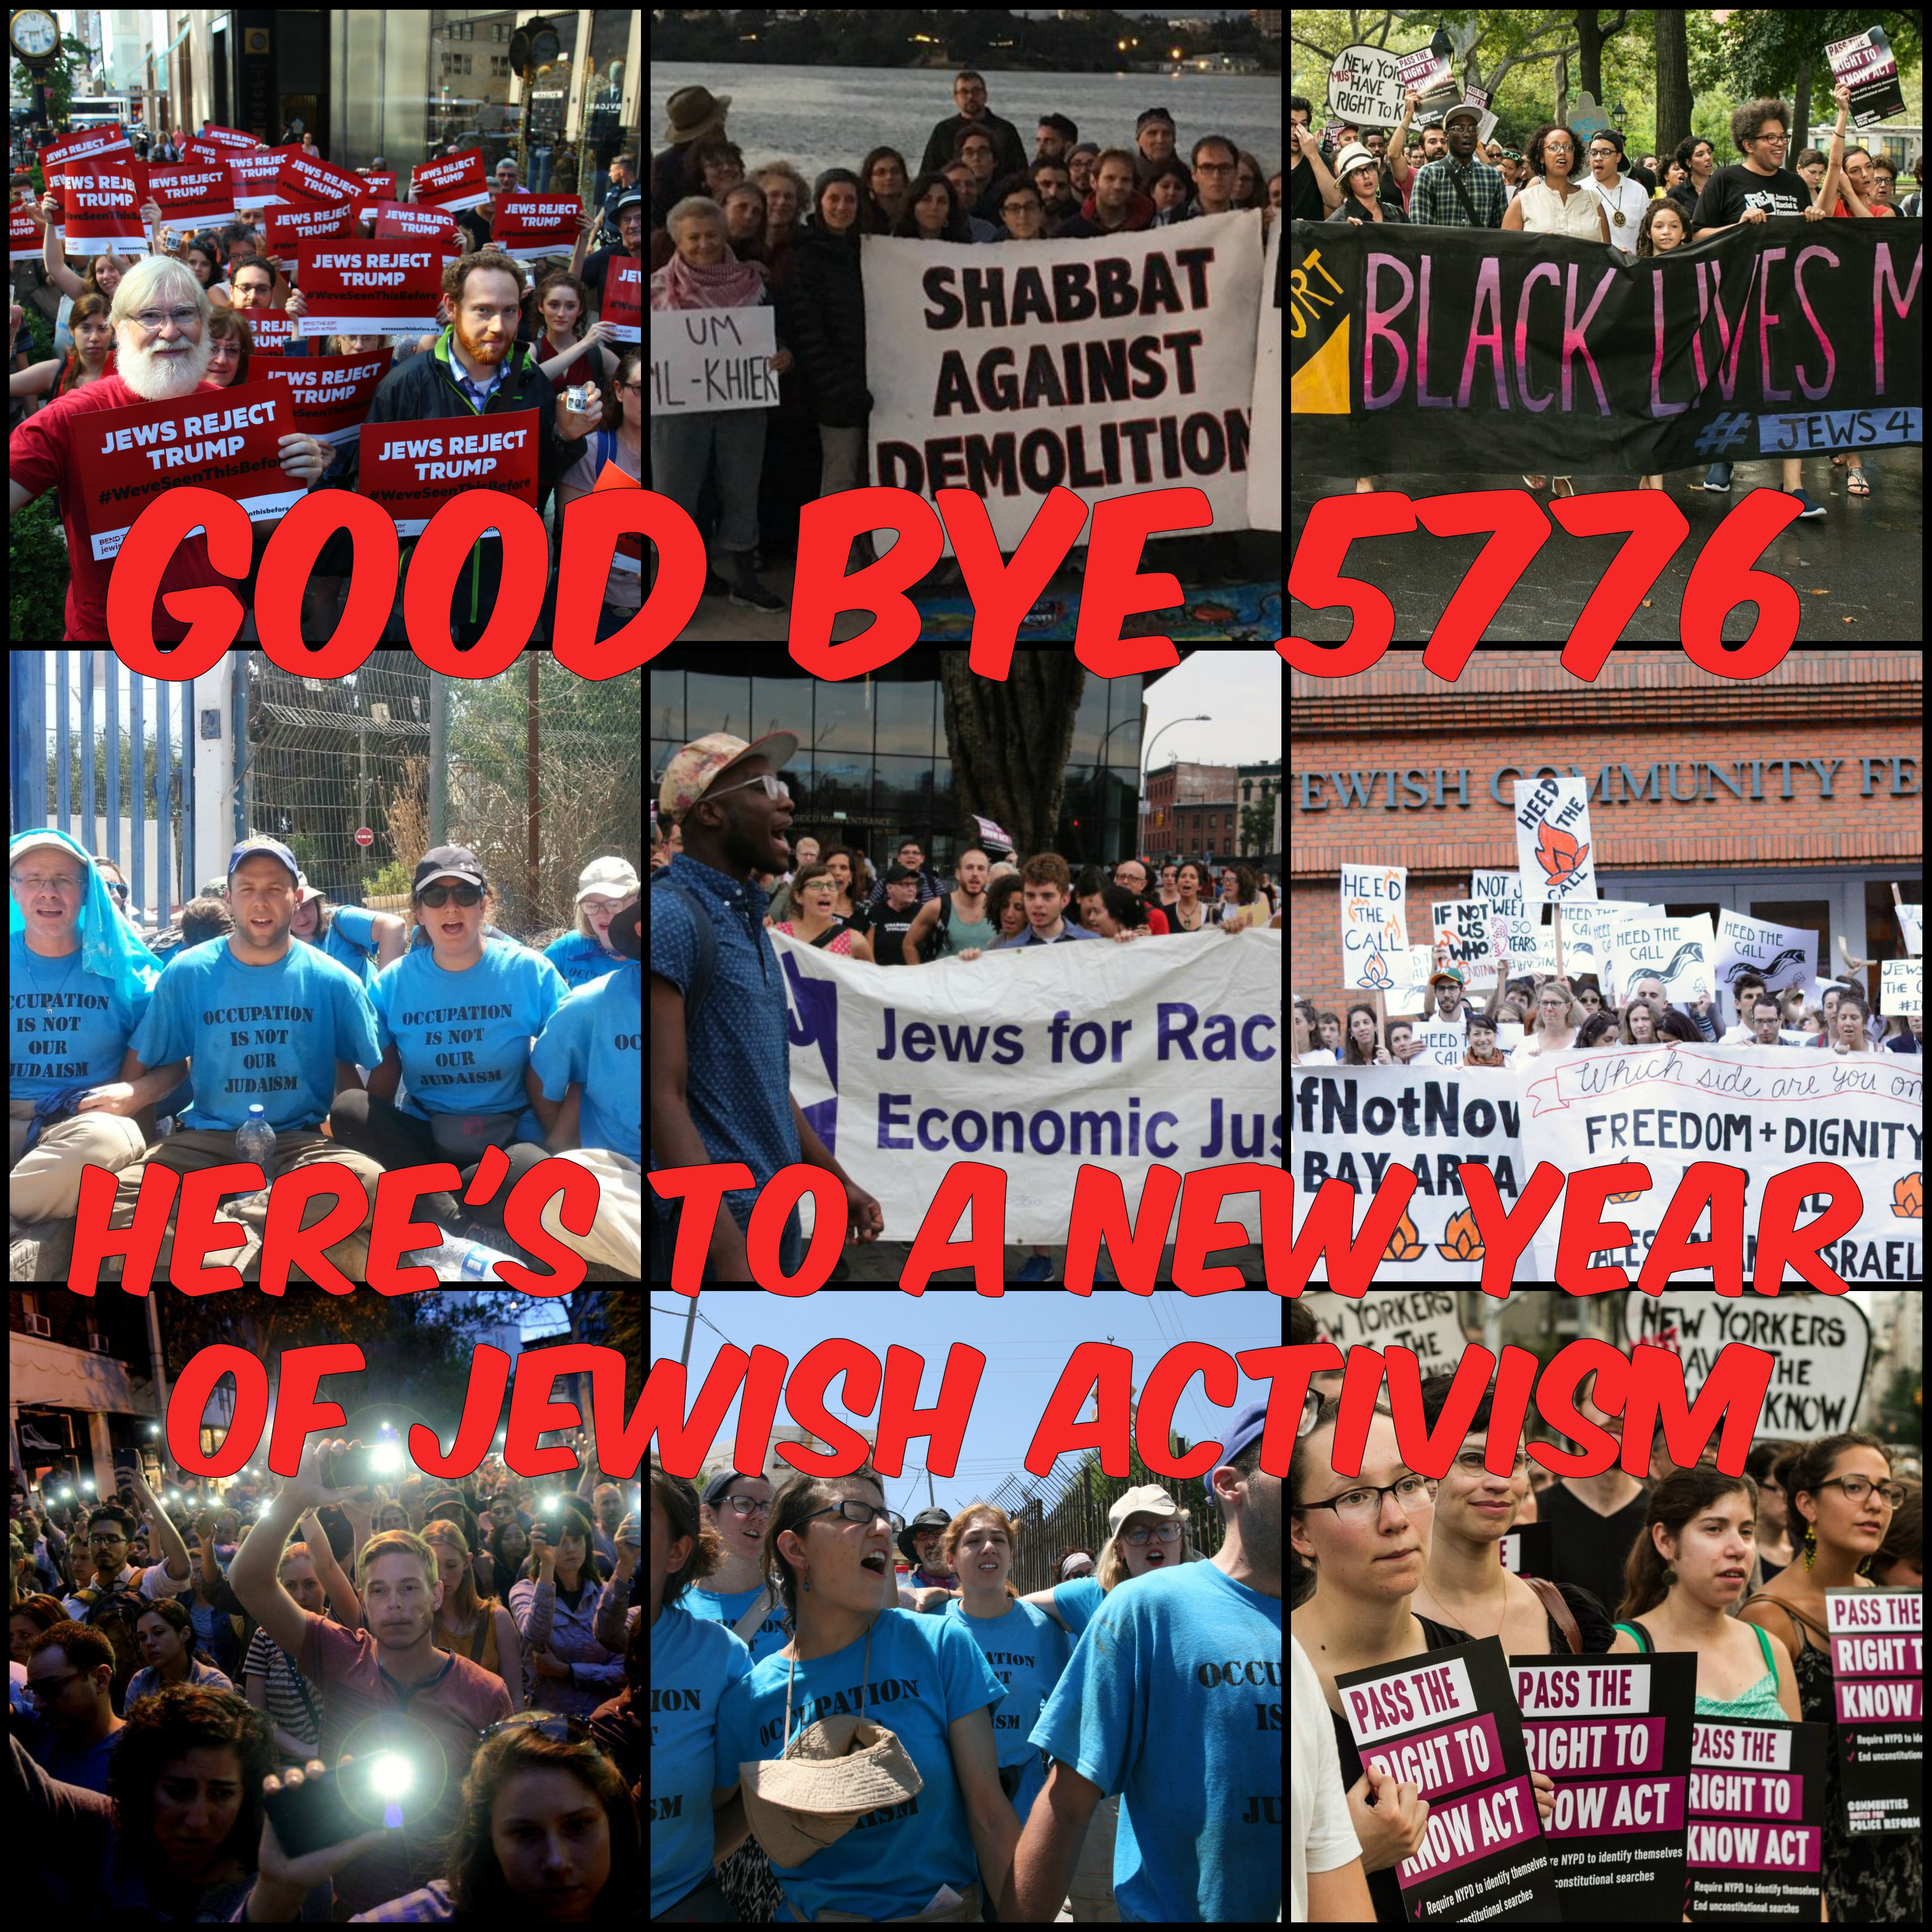 Goodbye 5776 — Hello to a new year of Jewish activism